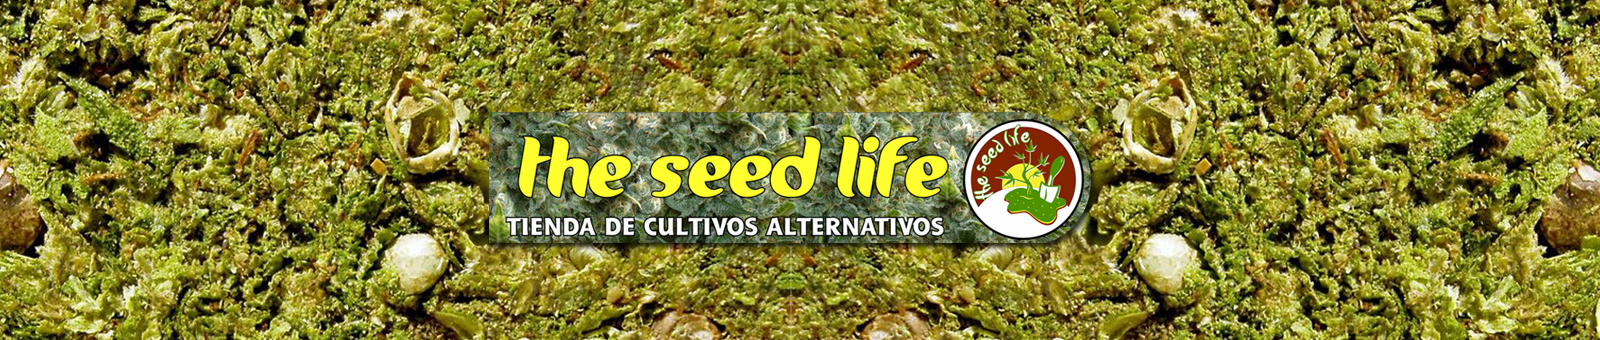 /THE SEED LIFE - 01